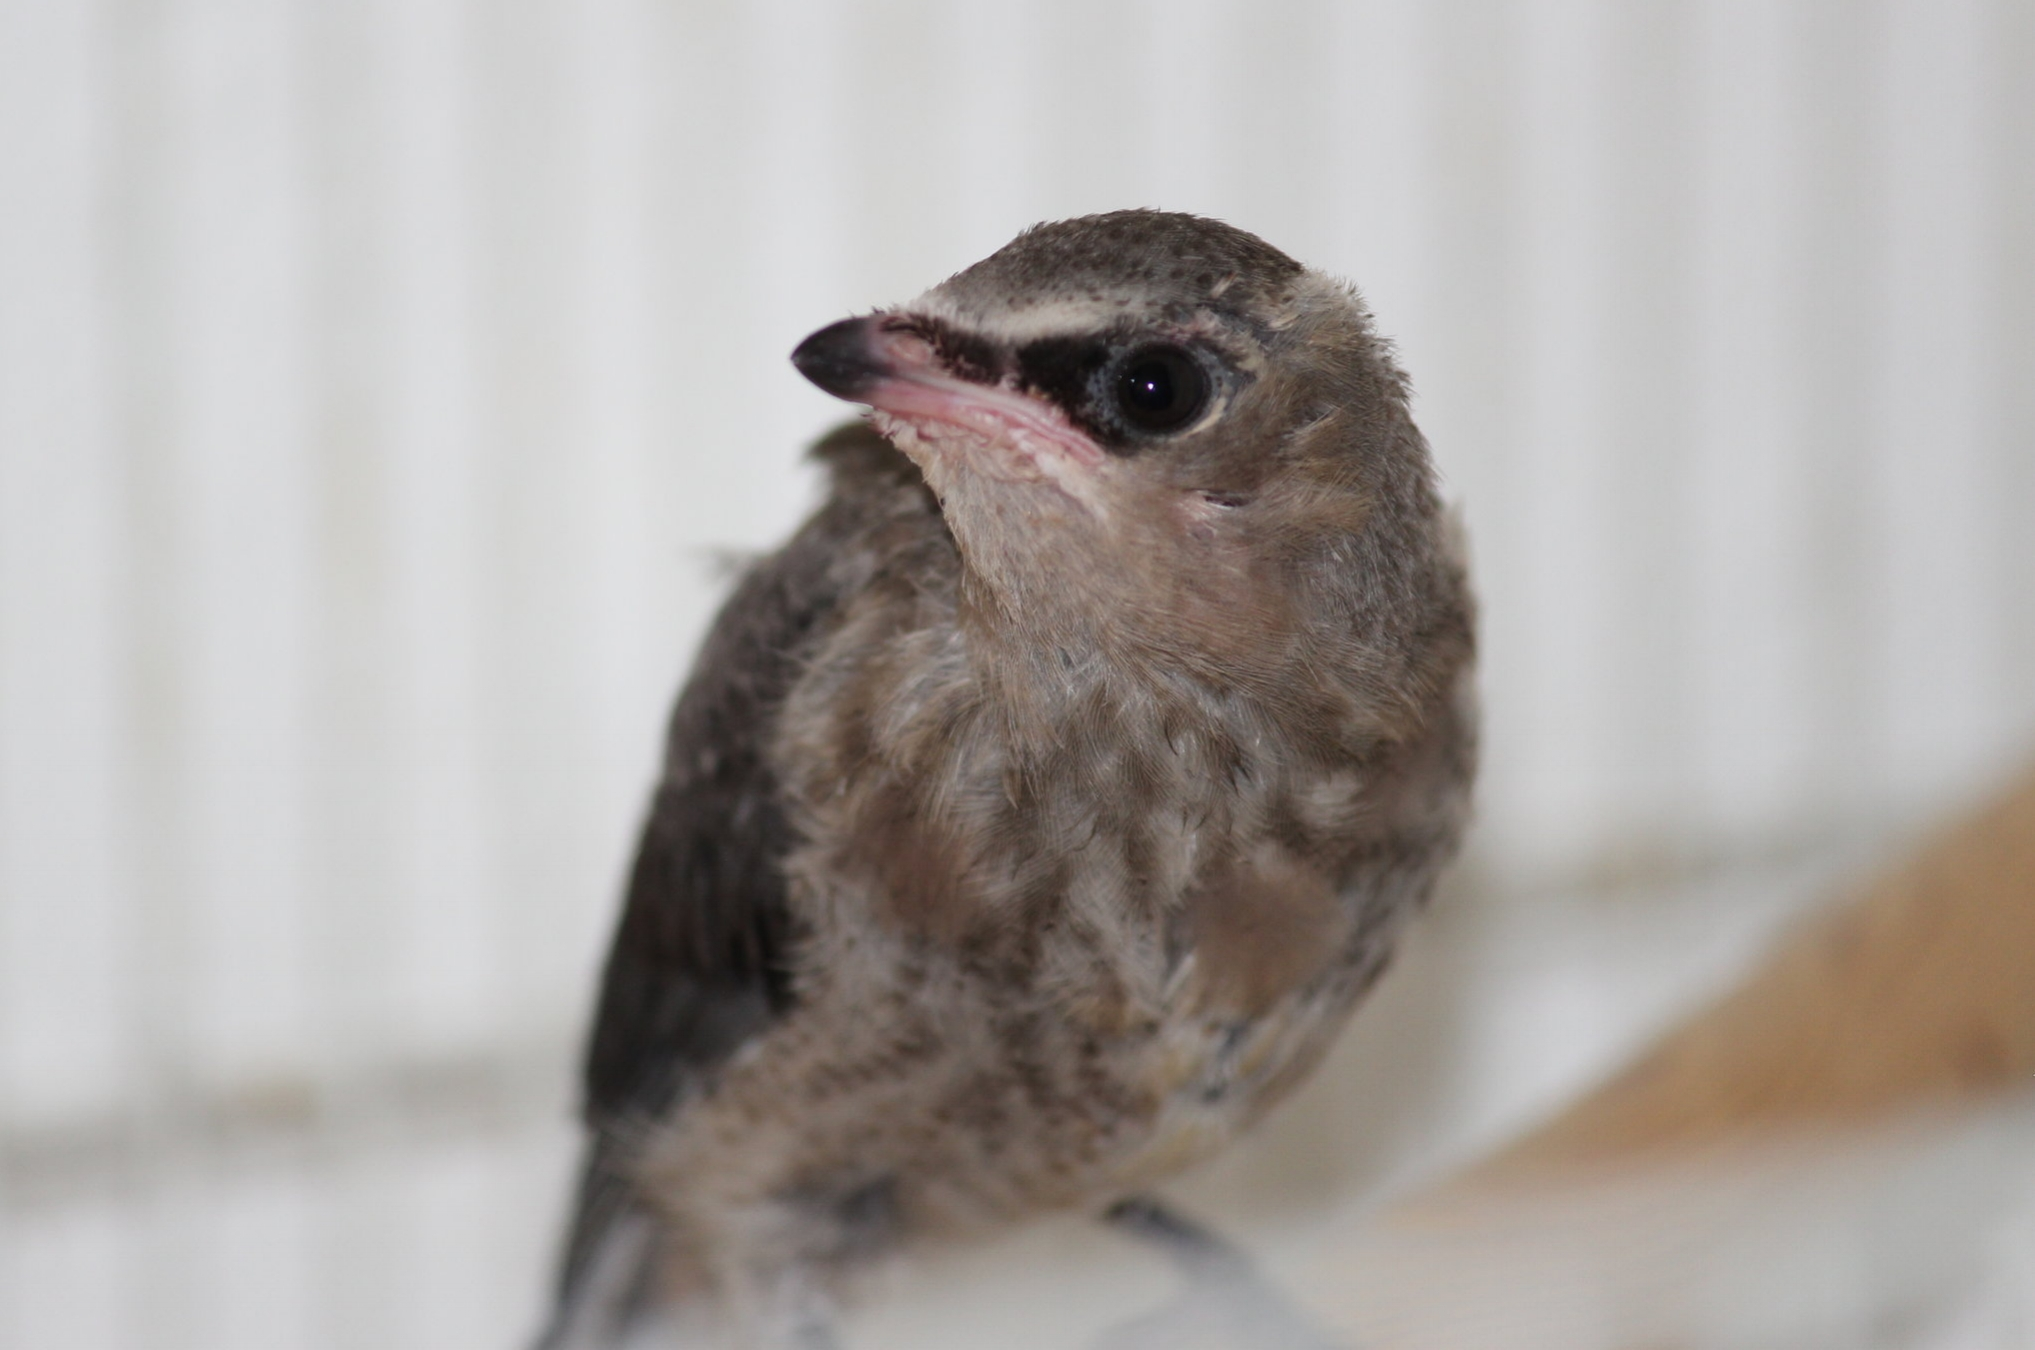 Fledgelings - A fledgling bird, like this Cedar Waxwing, can stand on your finger or a branch and has all or most of its adult feathers. Unless injured, it needs to be left alone so it can learn to fly!